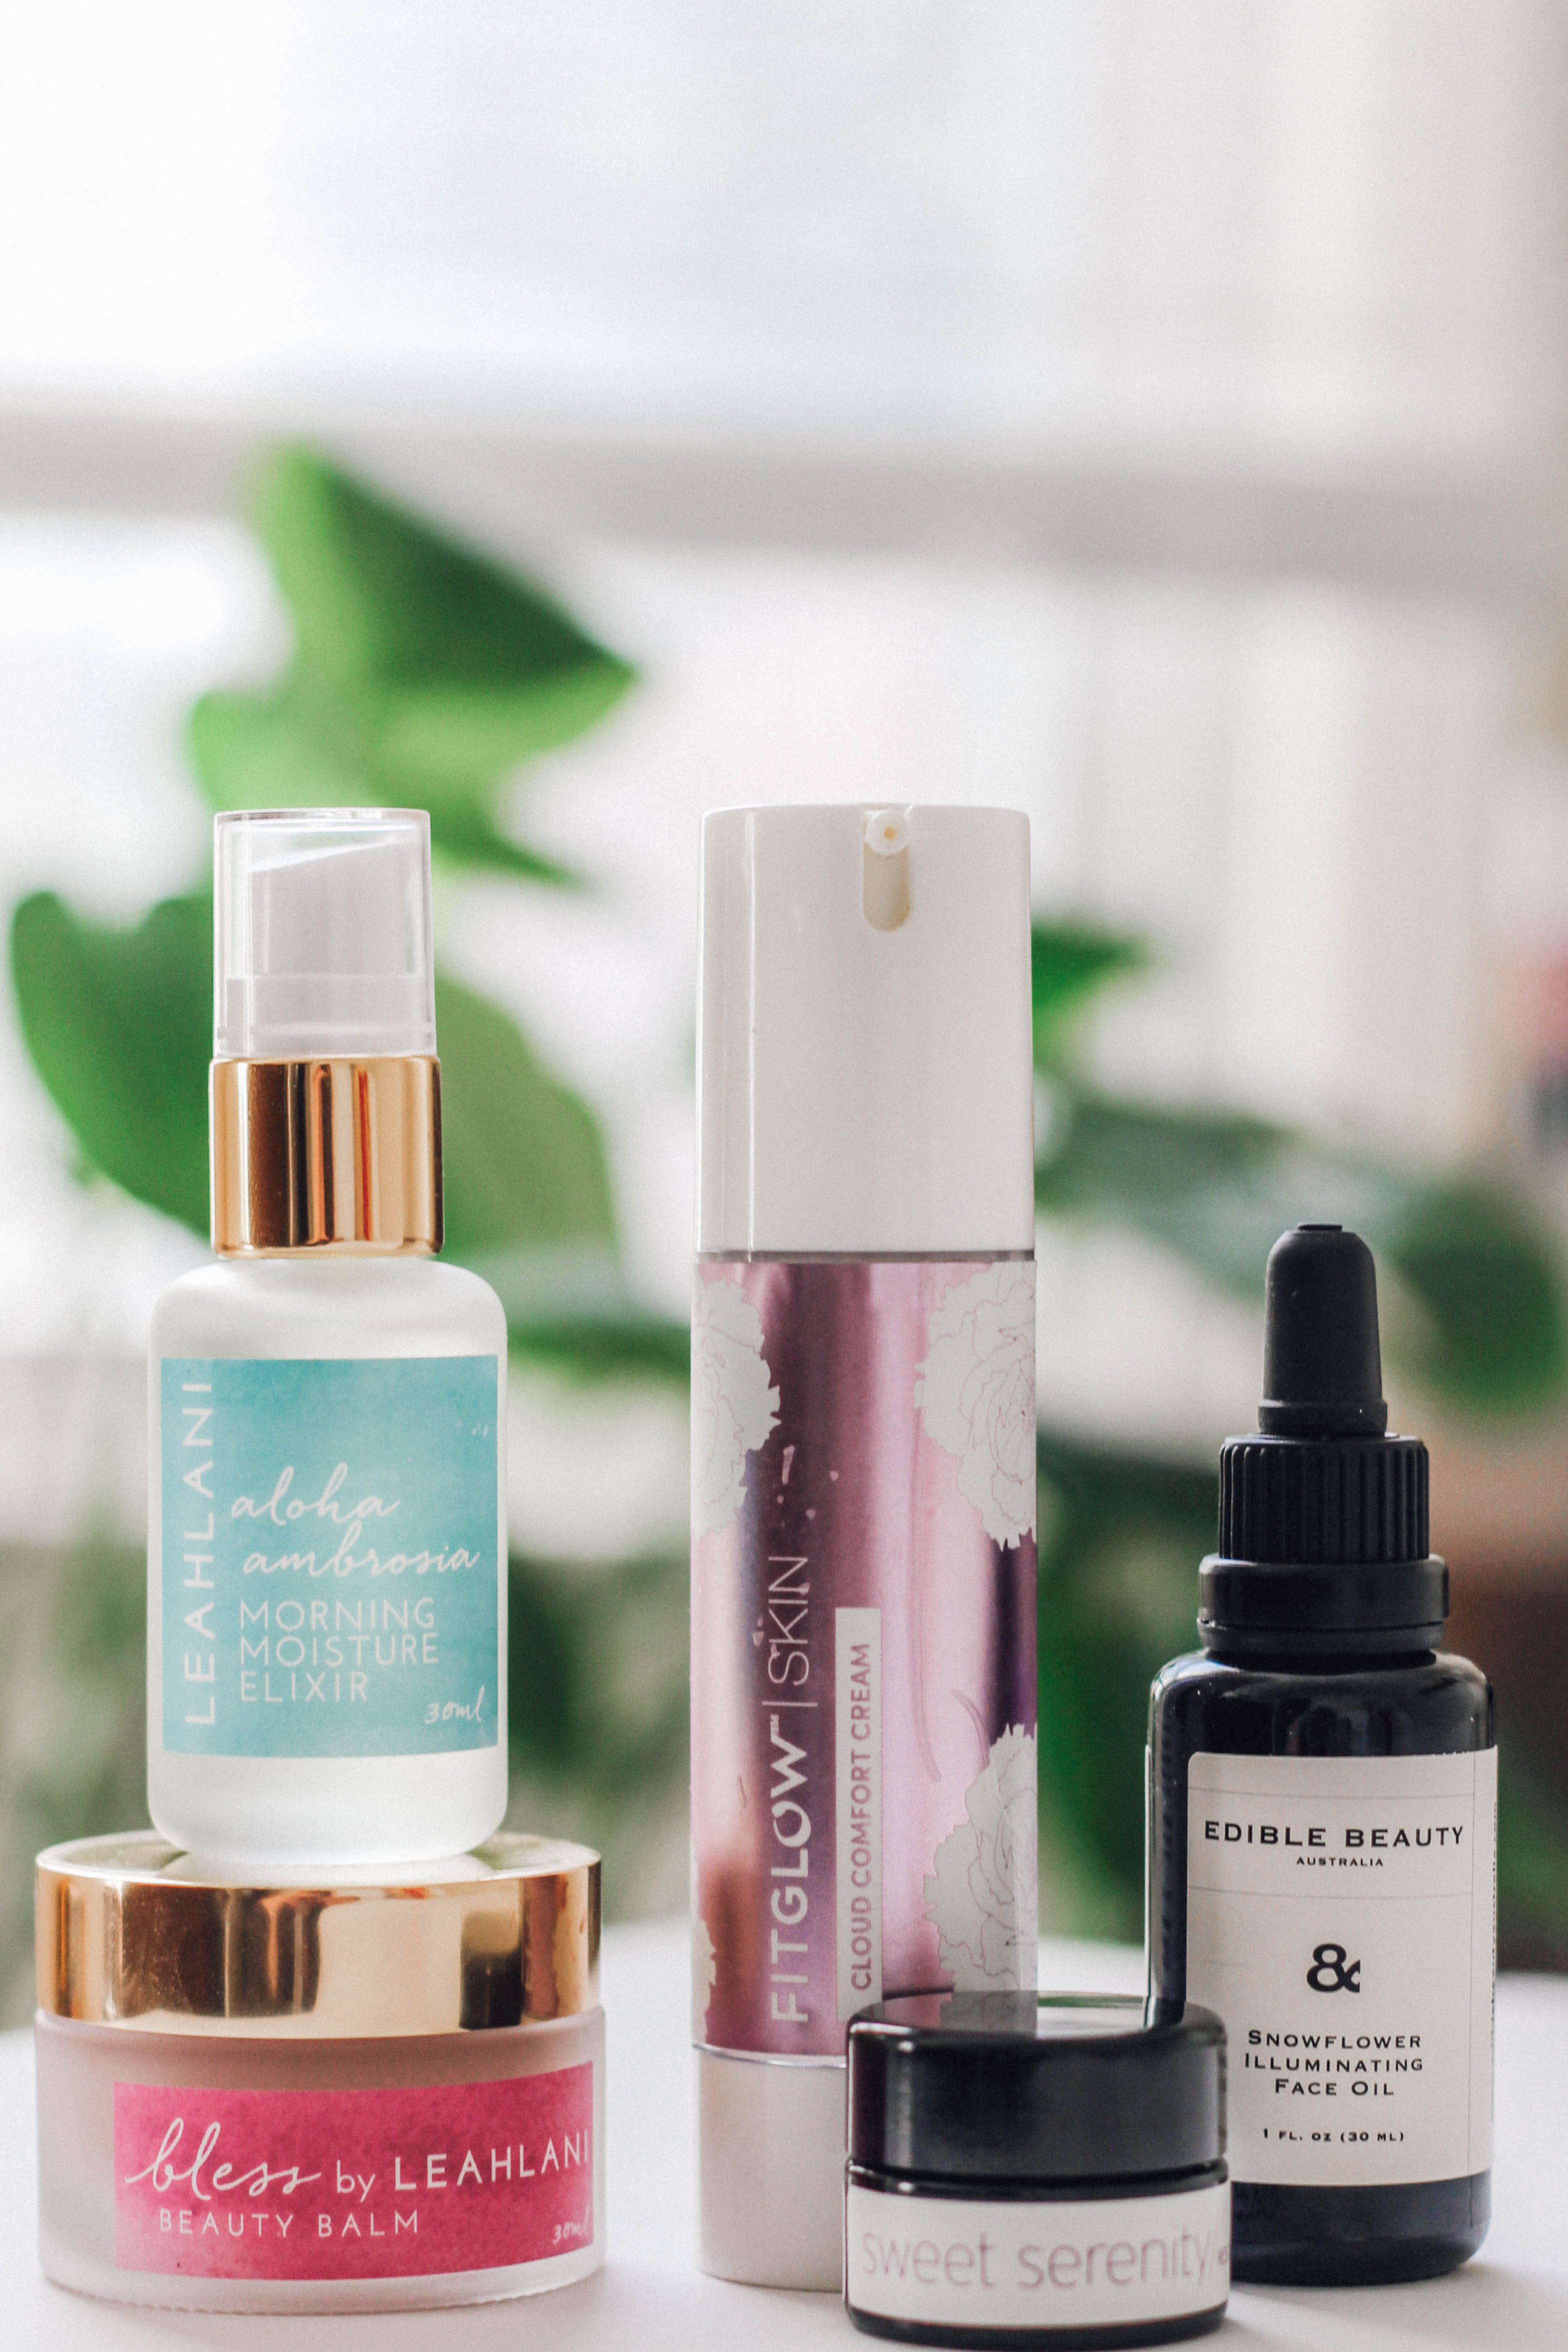 MONTHLY MUST-HAVES: 5 SERUMS FOR DRY SKIN